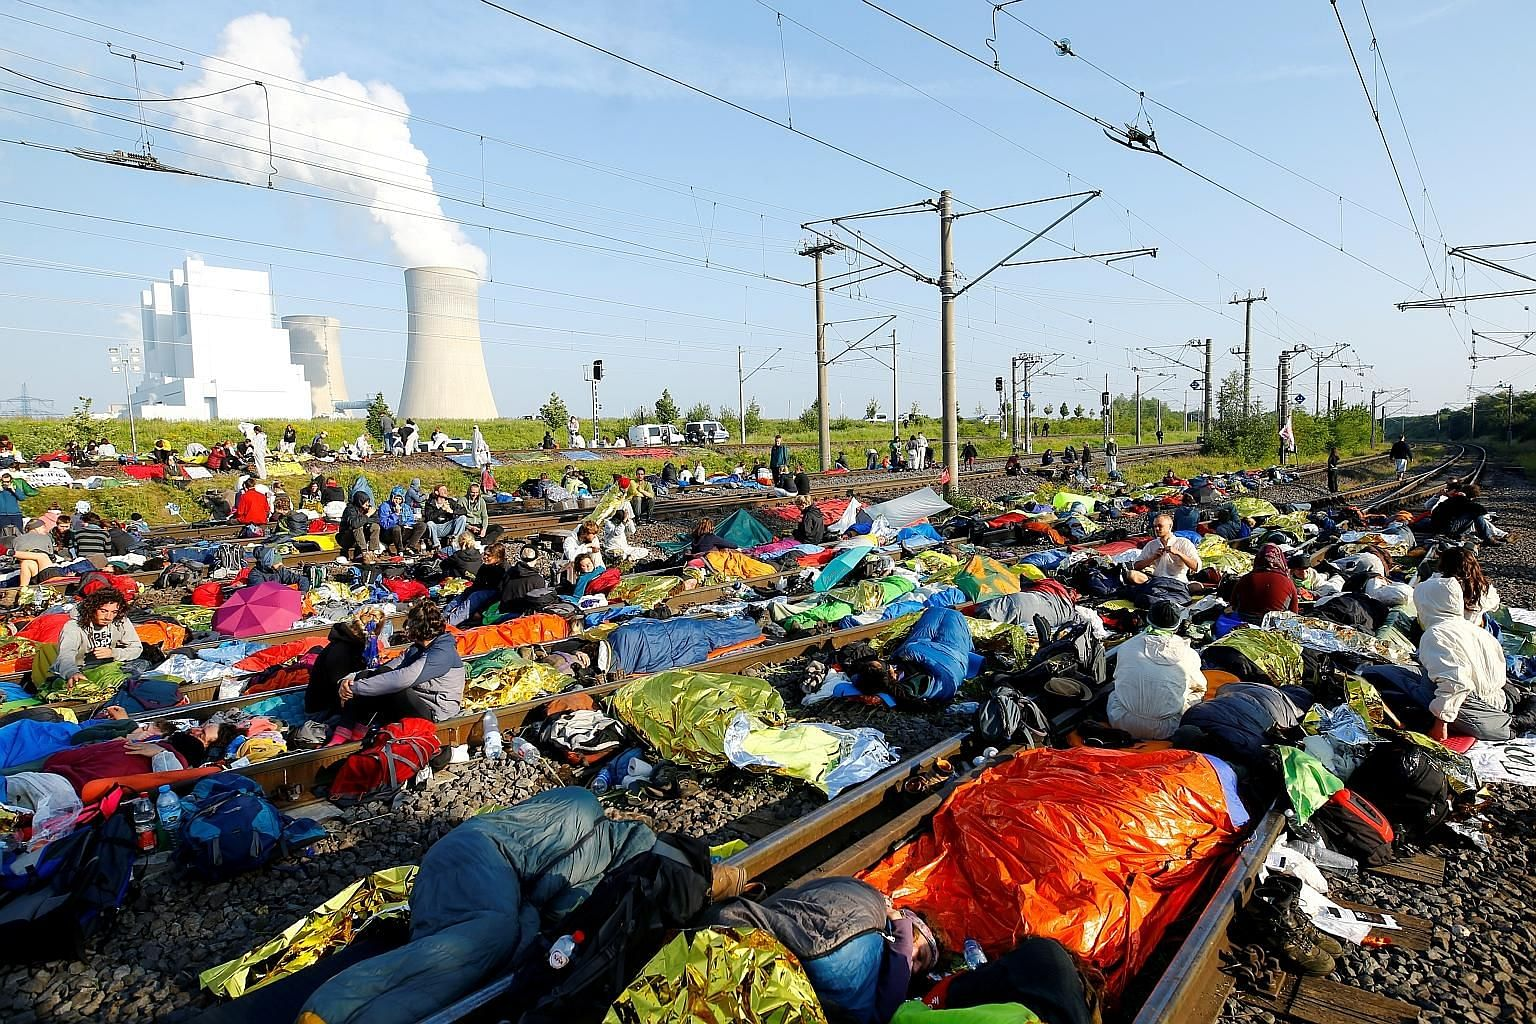 Green activists in Germany blocking railway tracks near a coal mine during a protest for action against climate change yesterday.